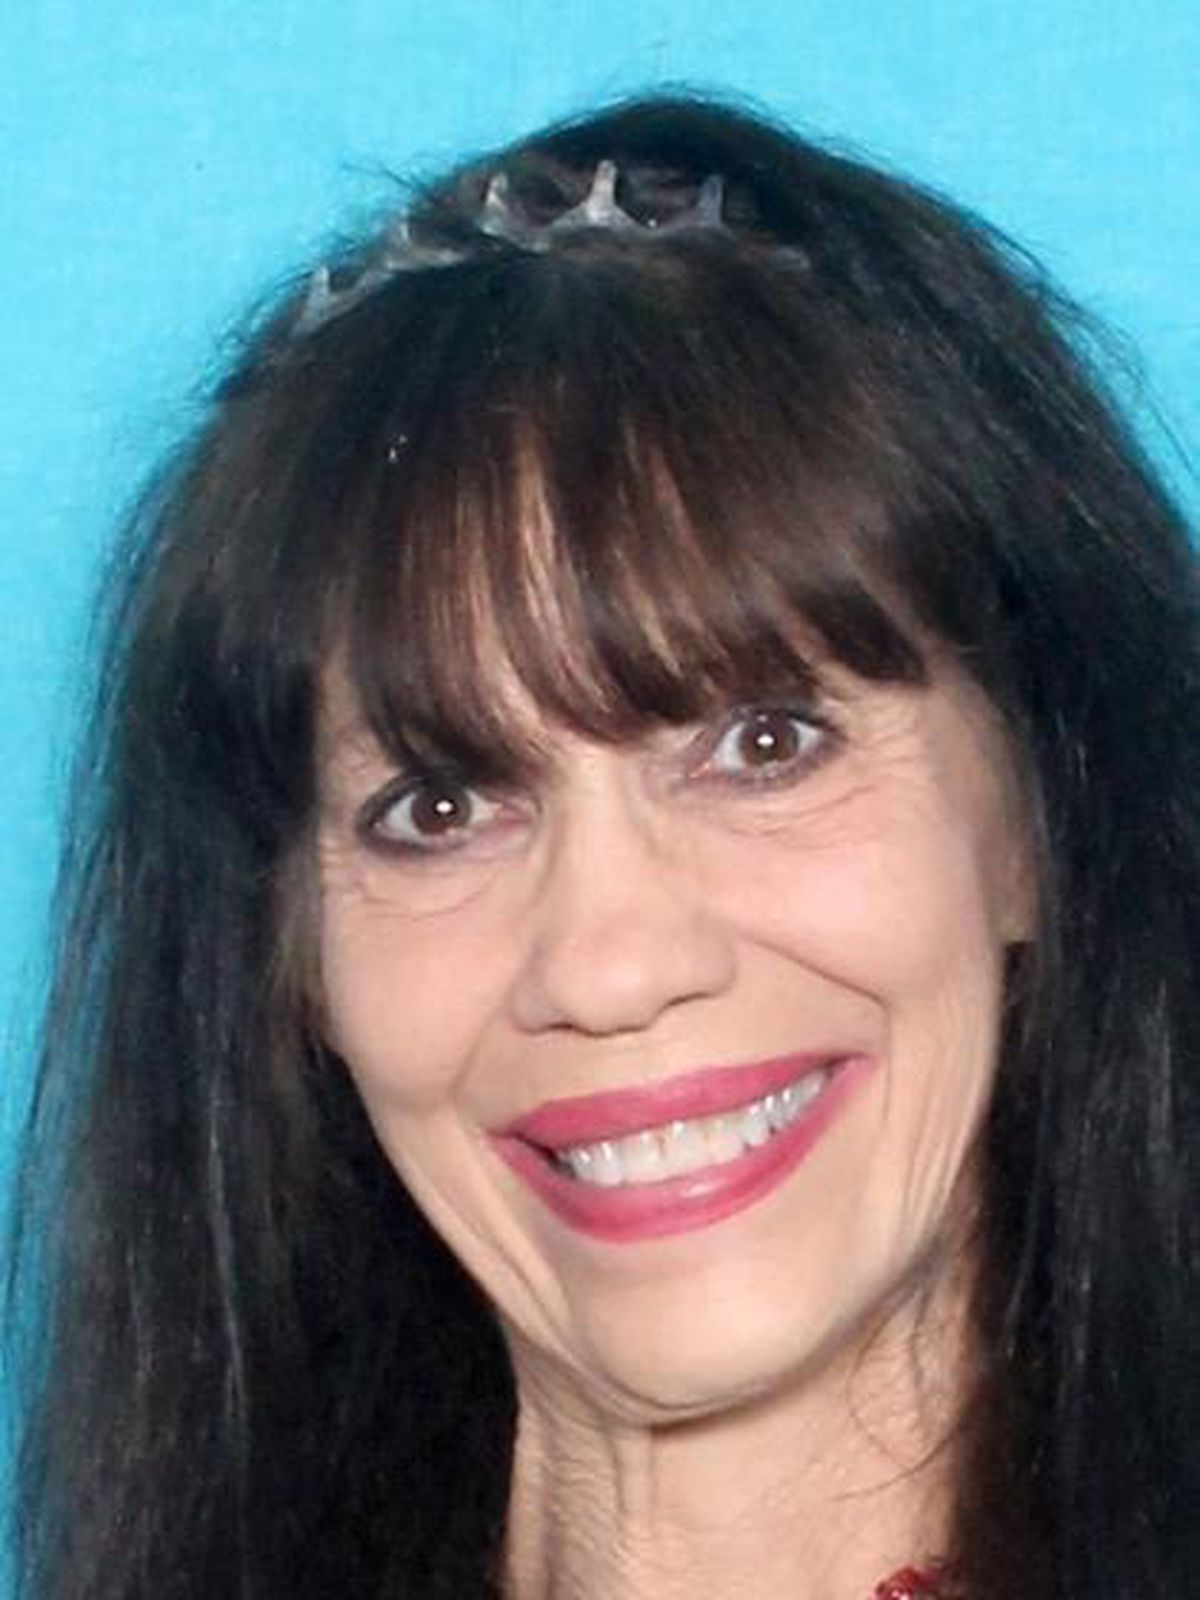 CPSO Dive Team recovers body of woman who jumped off 210 bridge